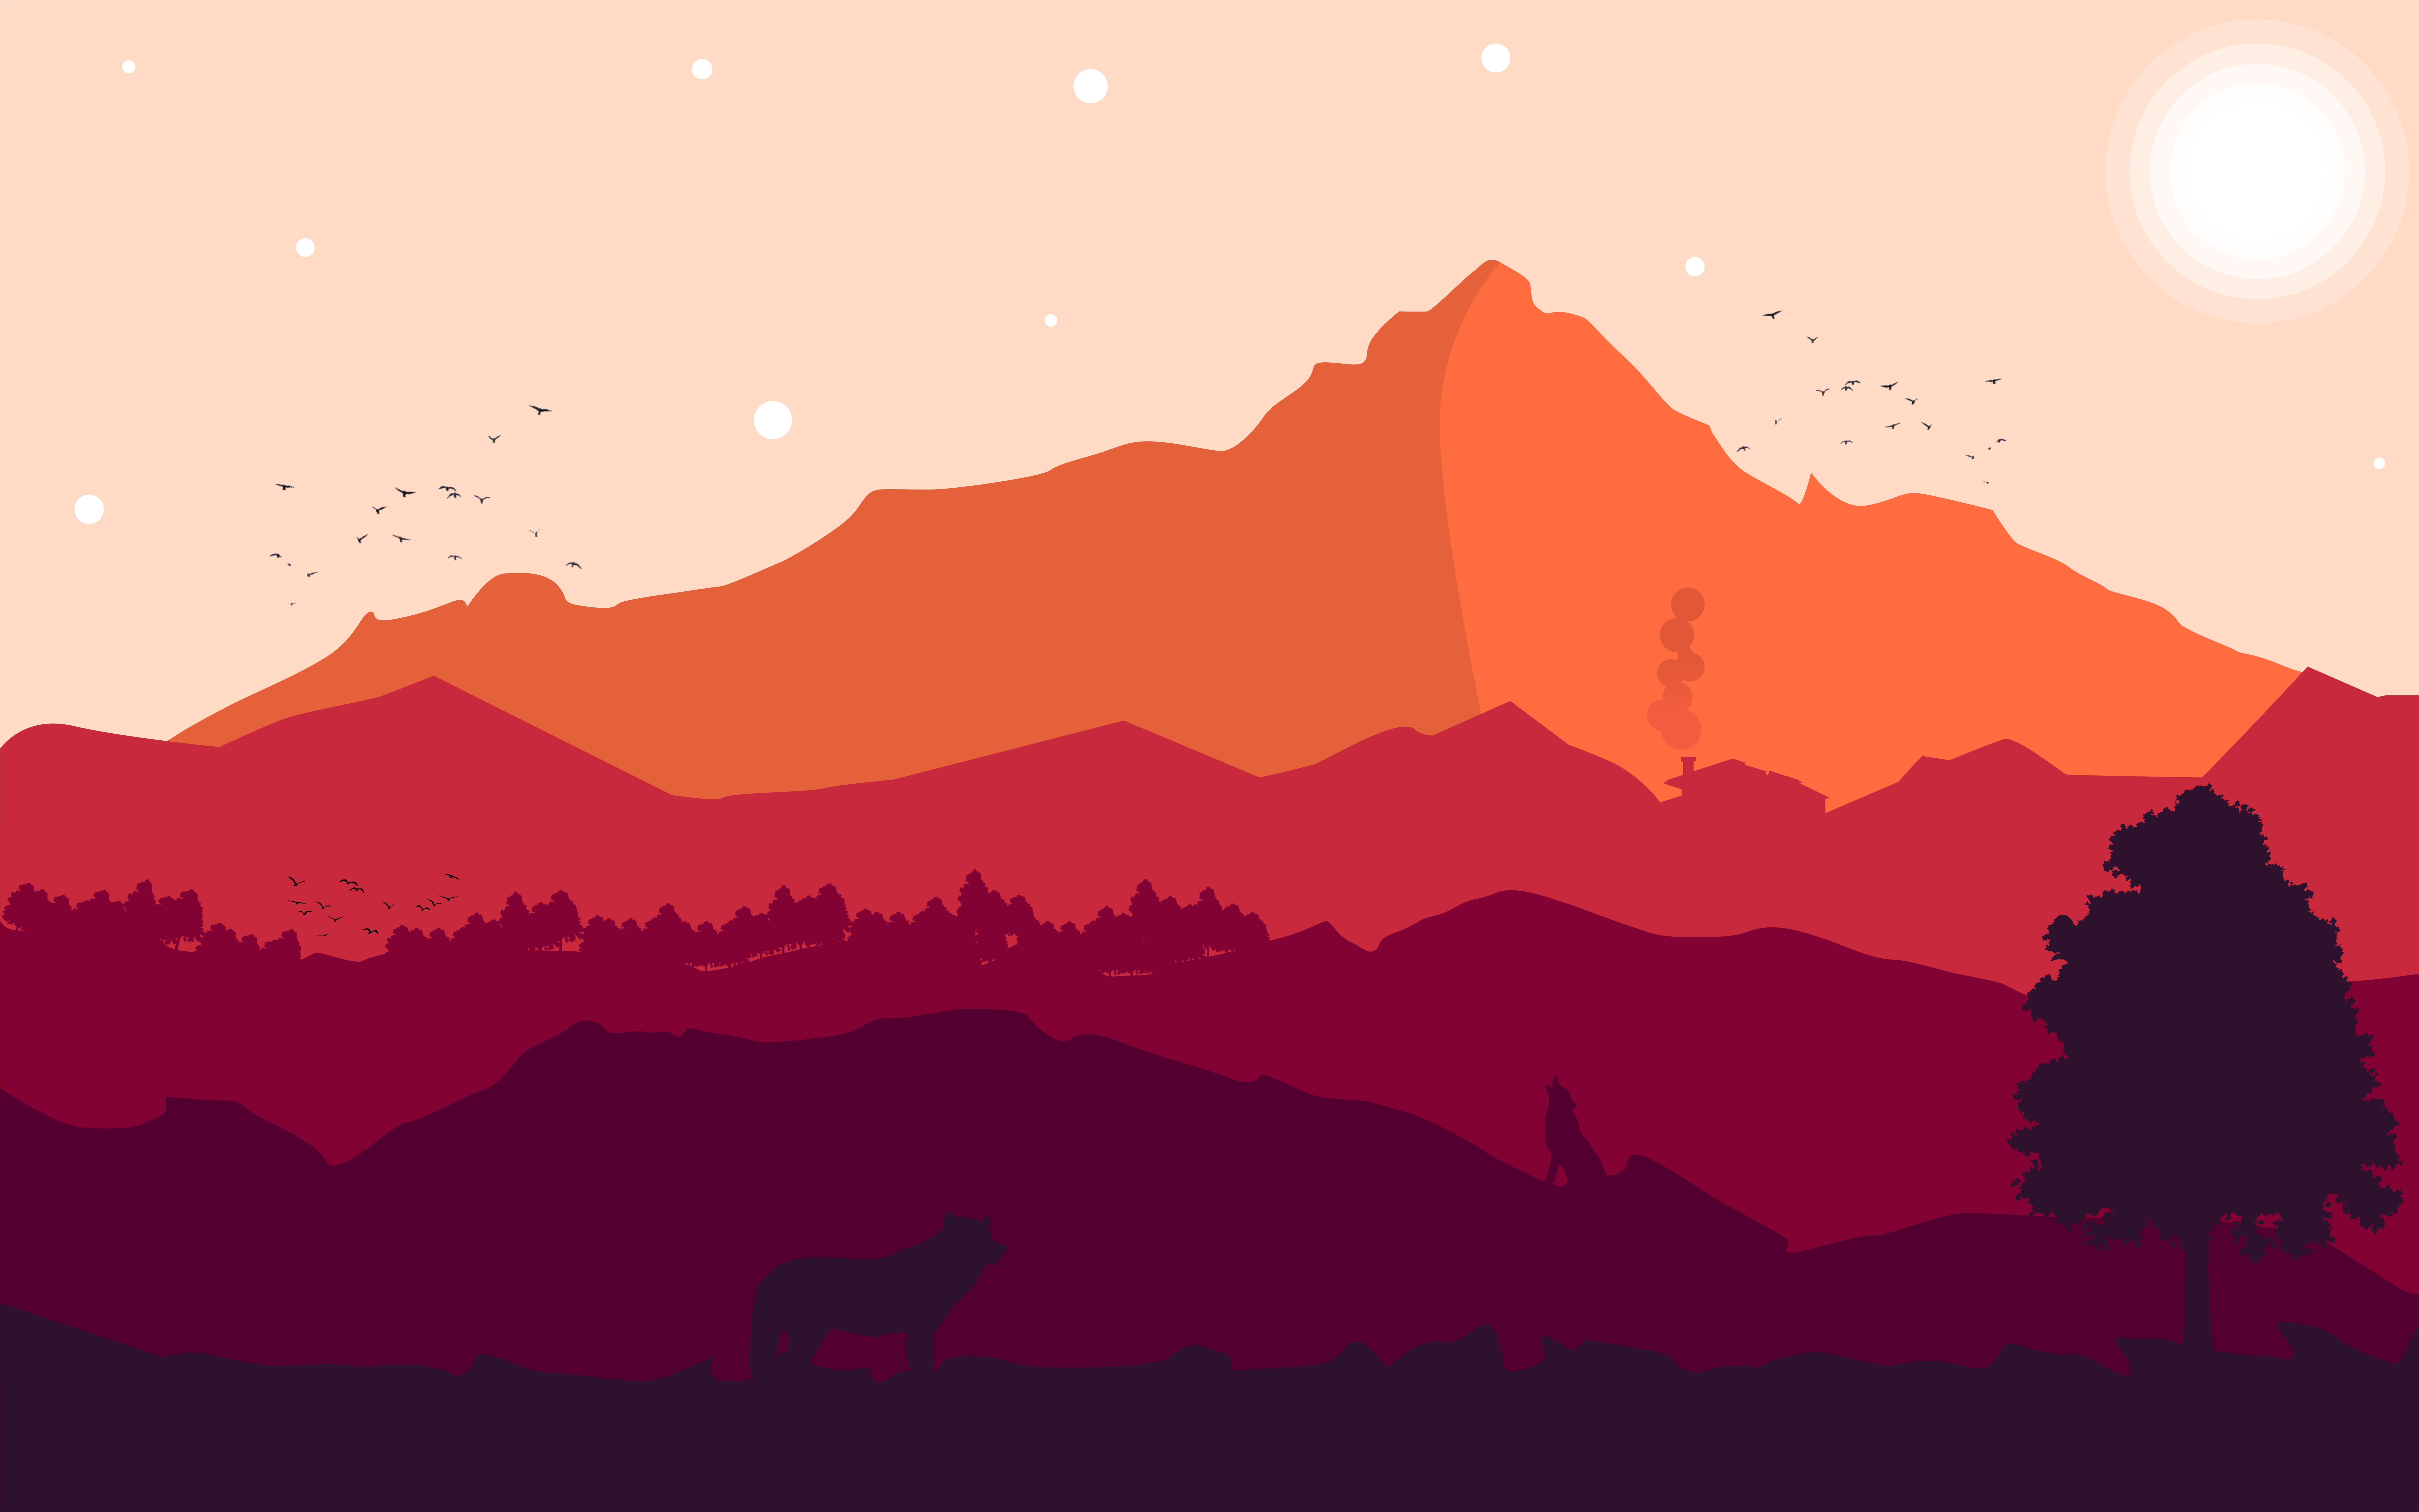 Firewatch 10k hd games 4k wallpapers images - 10k wallpaper nature ...